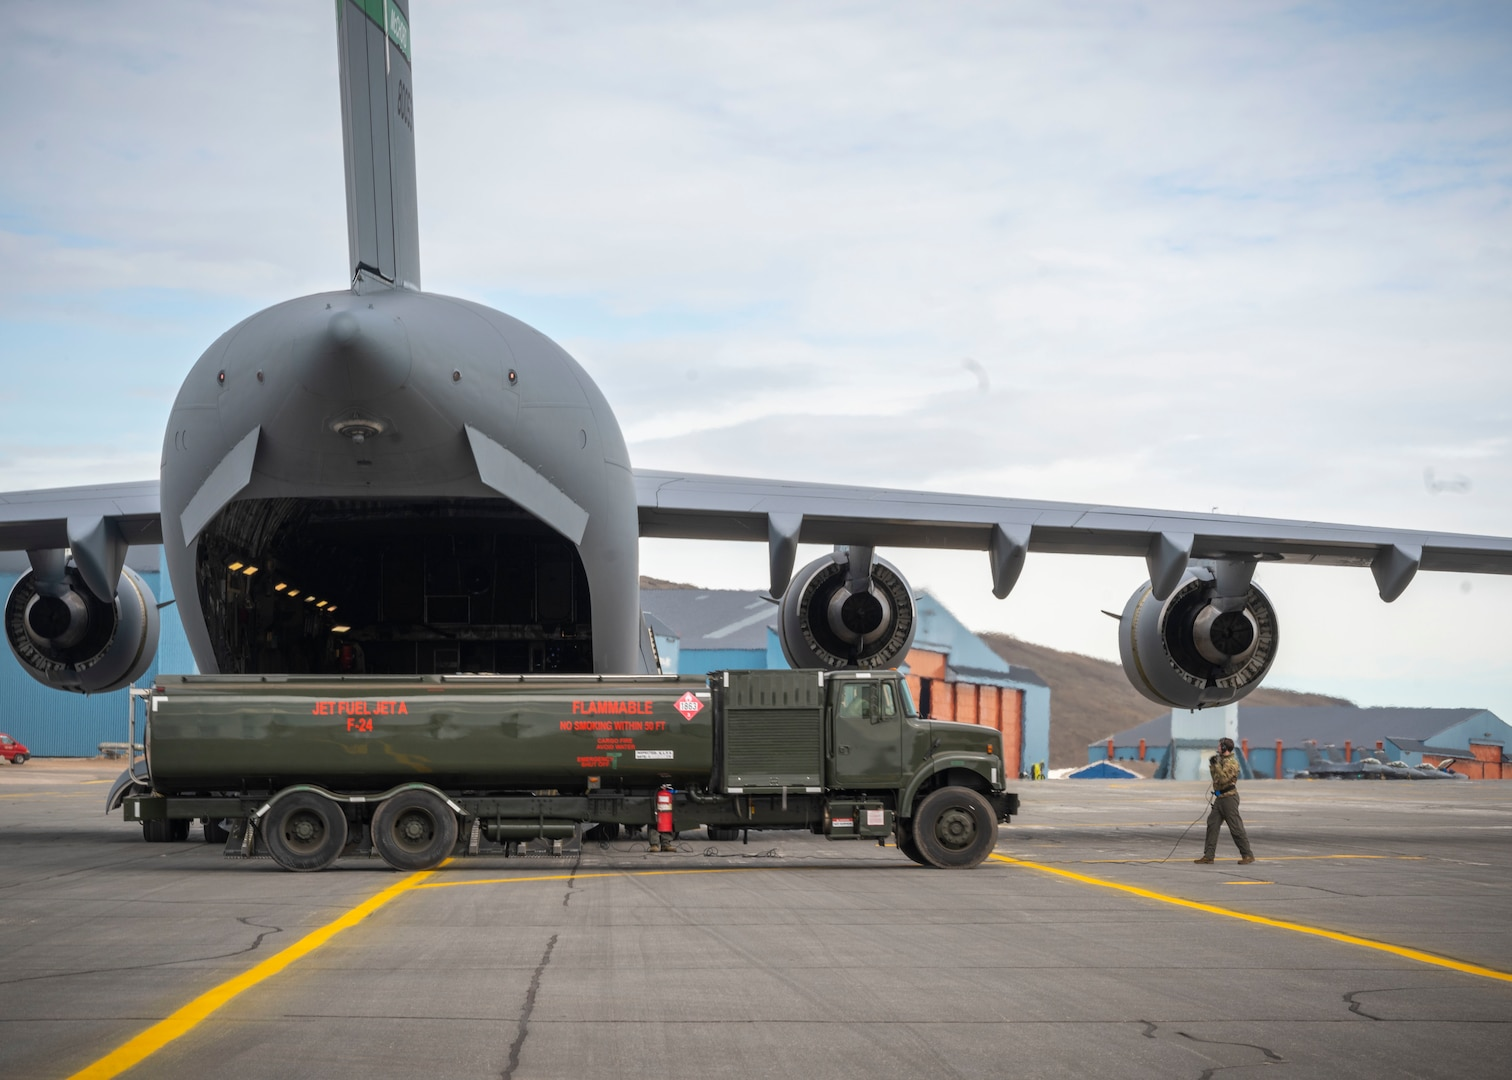 U.S. Air Force Airmen assigned to the 140th Wing and 4th Airlift Squadron preform a wet-wing defuel during exercise Amalgam Dart 21-01, June 16, 2021 at Thule Air Base, Greenland.